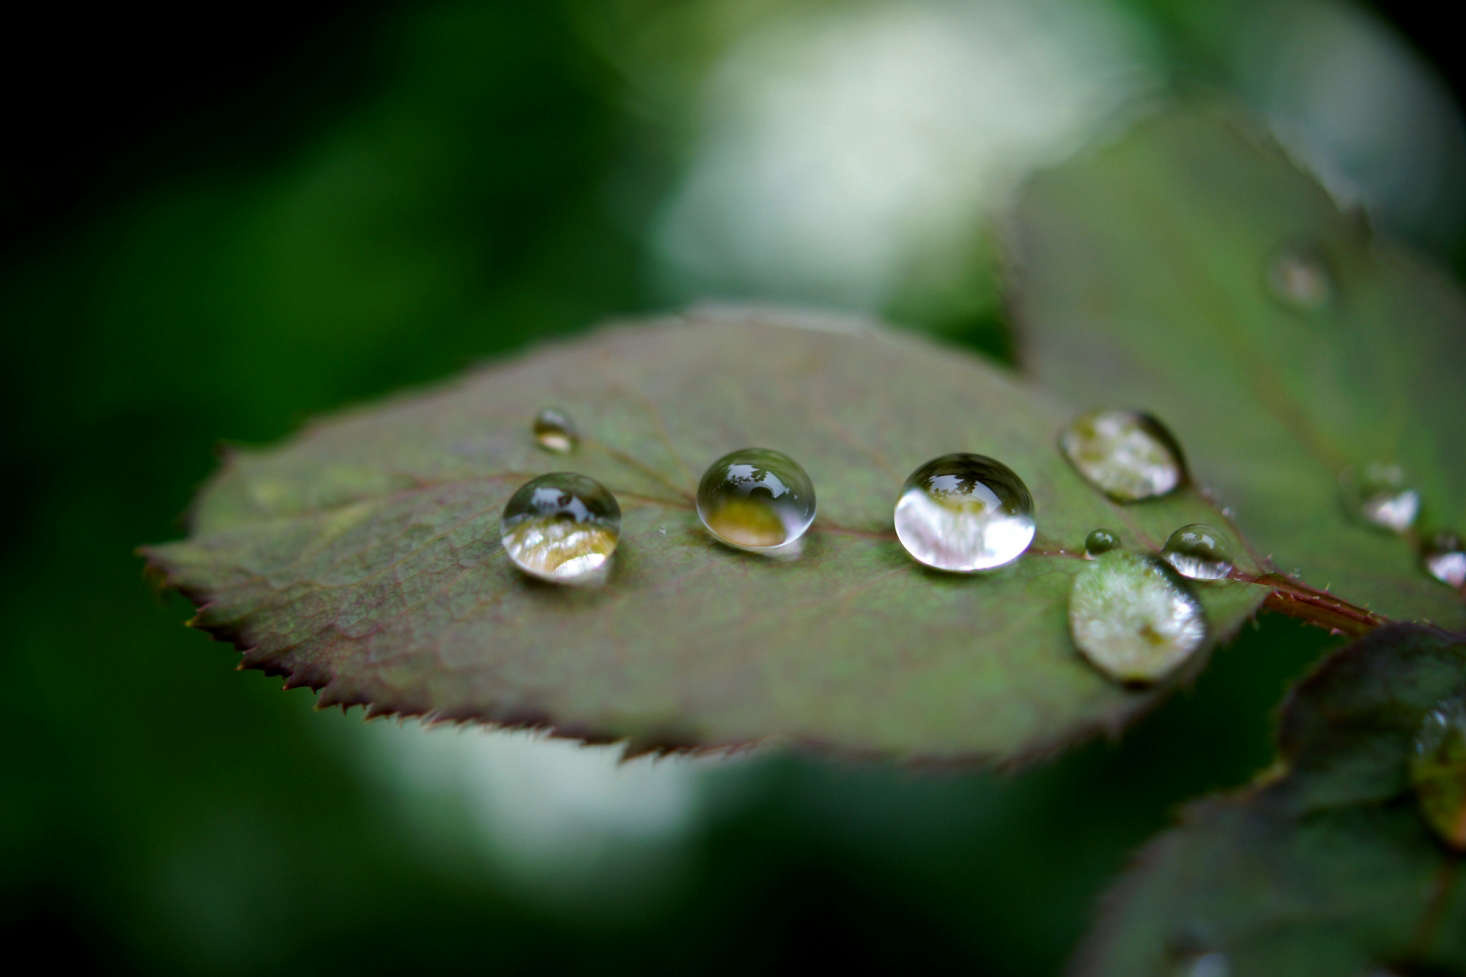 After the rain. Photograph by Takashi M via Flickr.